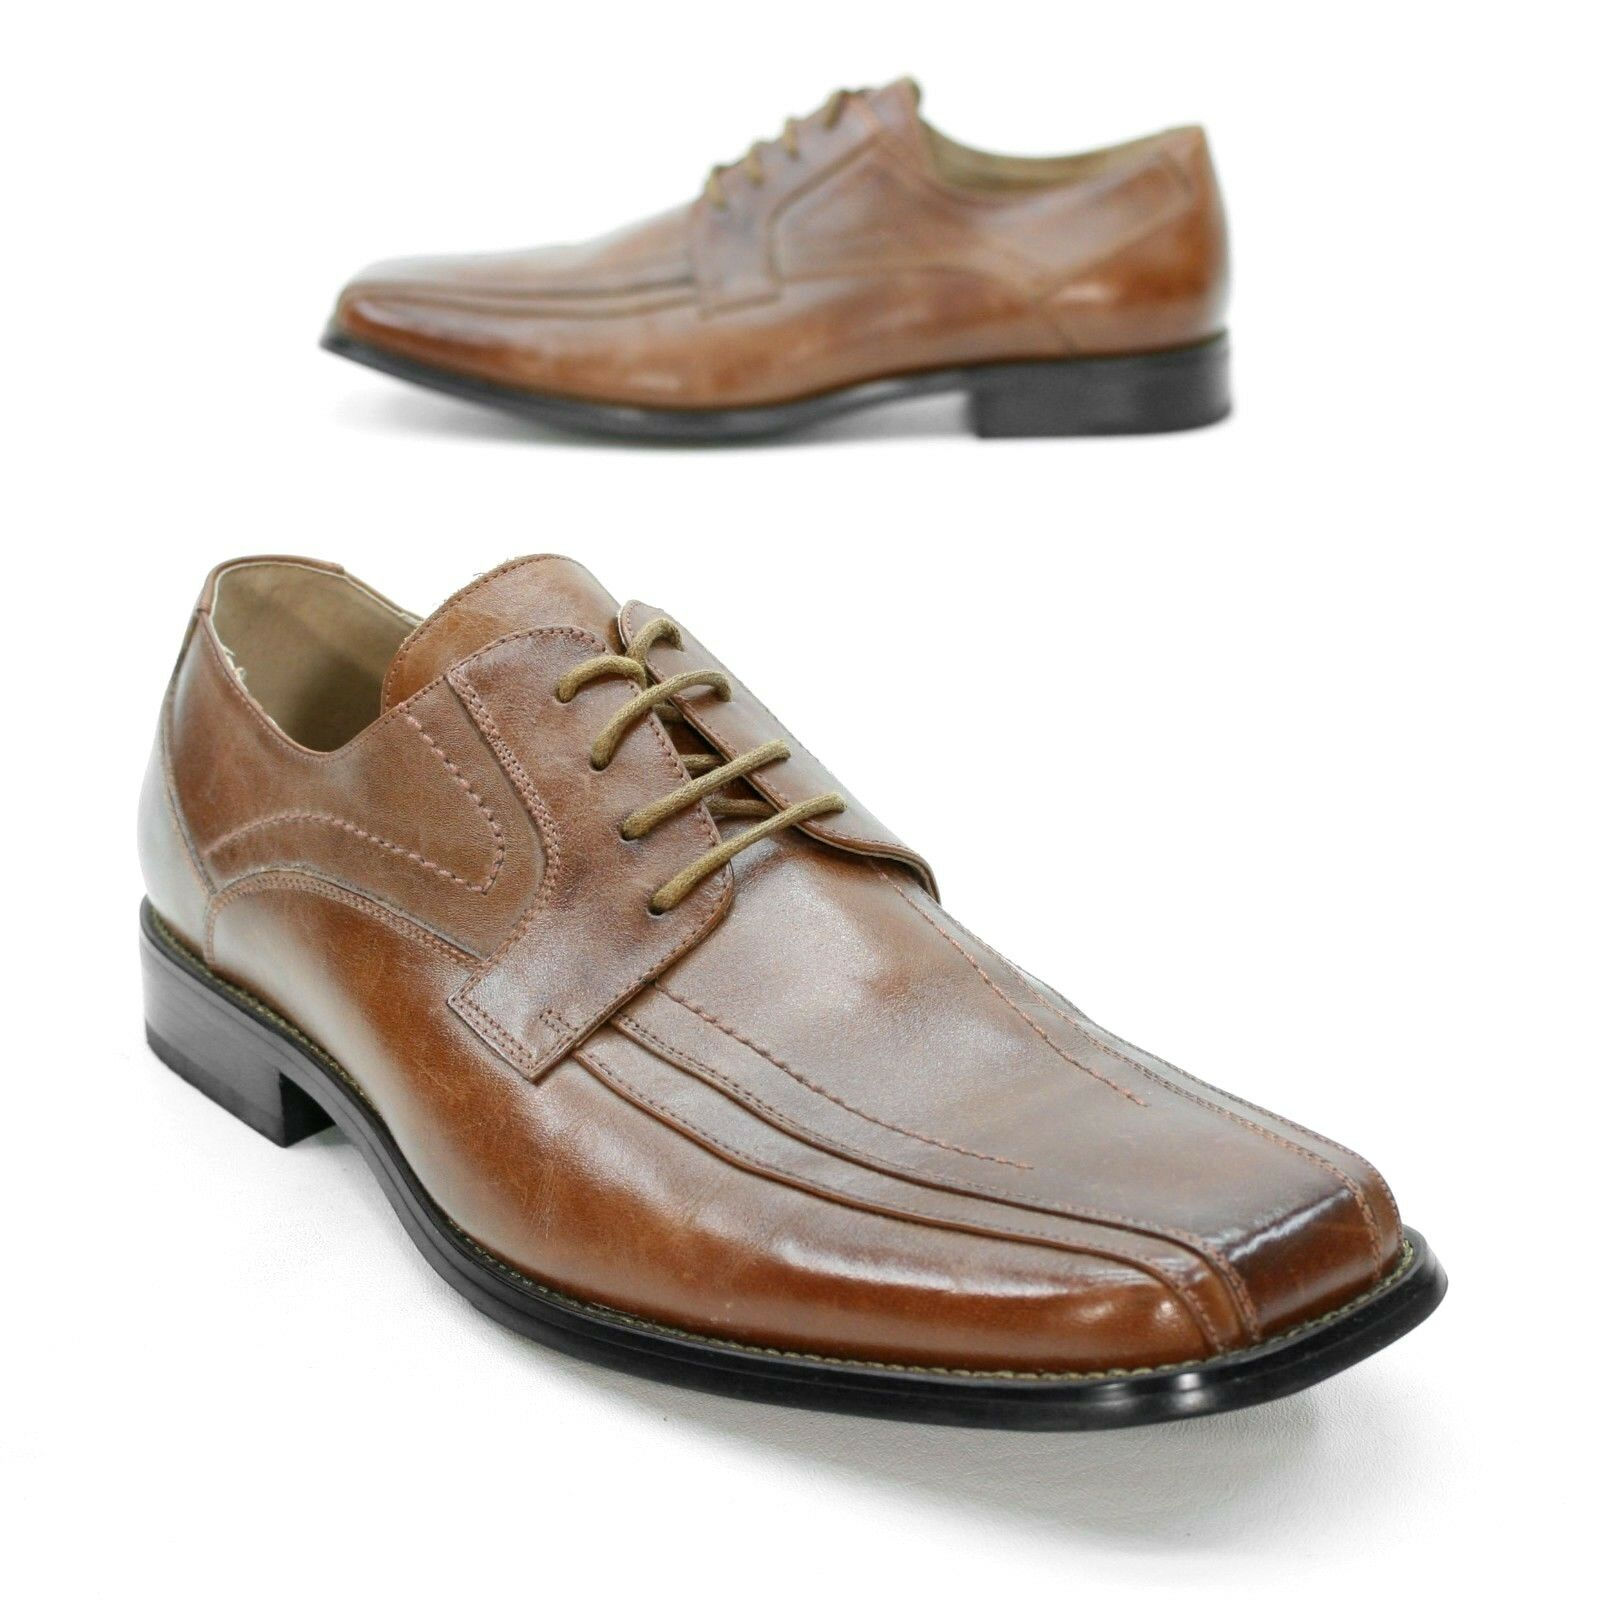 59088466c9f Stacy Adams Men's 12 Brown Cognac Leather Bicycle Toe Oxfords Dress shoes.  Merrell Men Boots ...